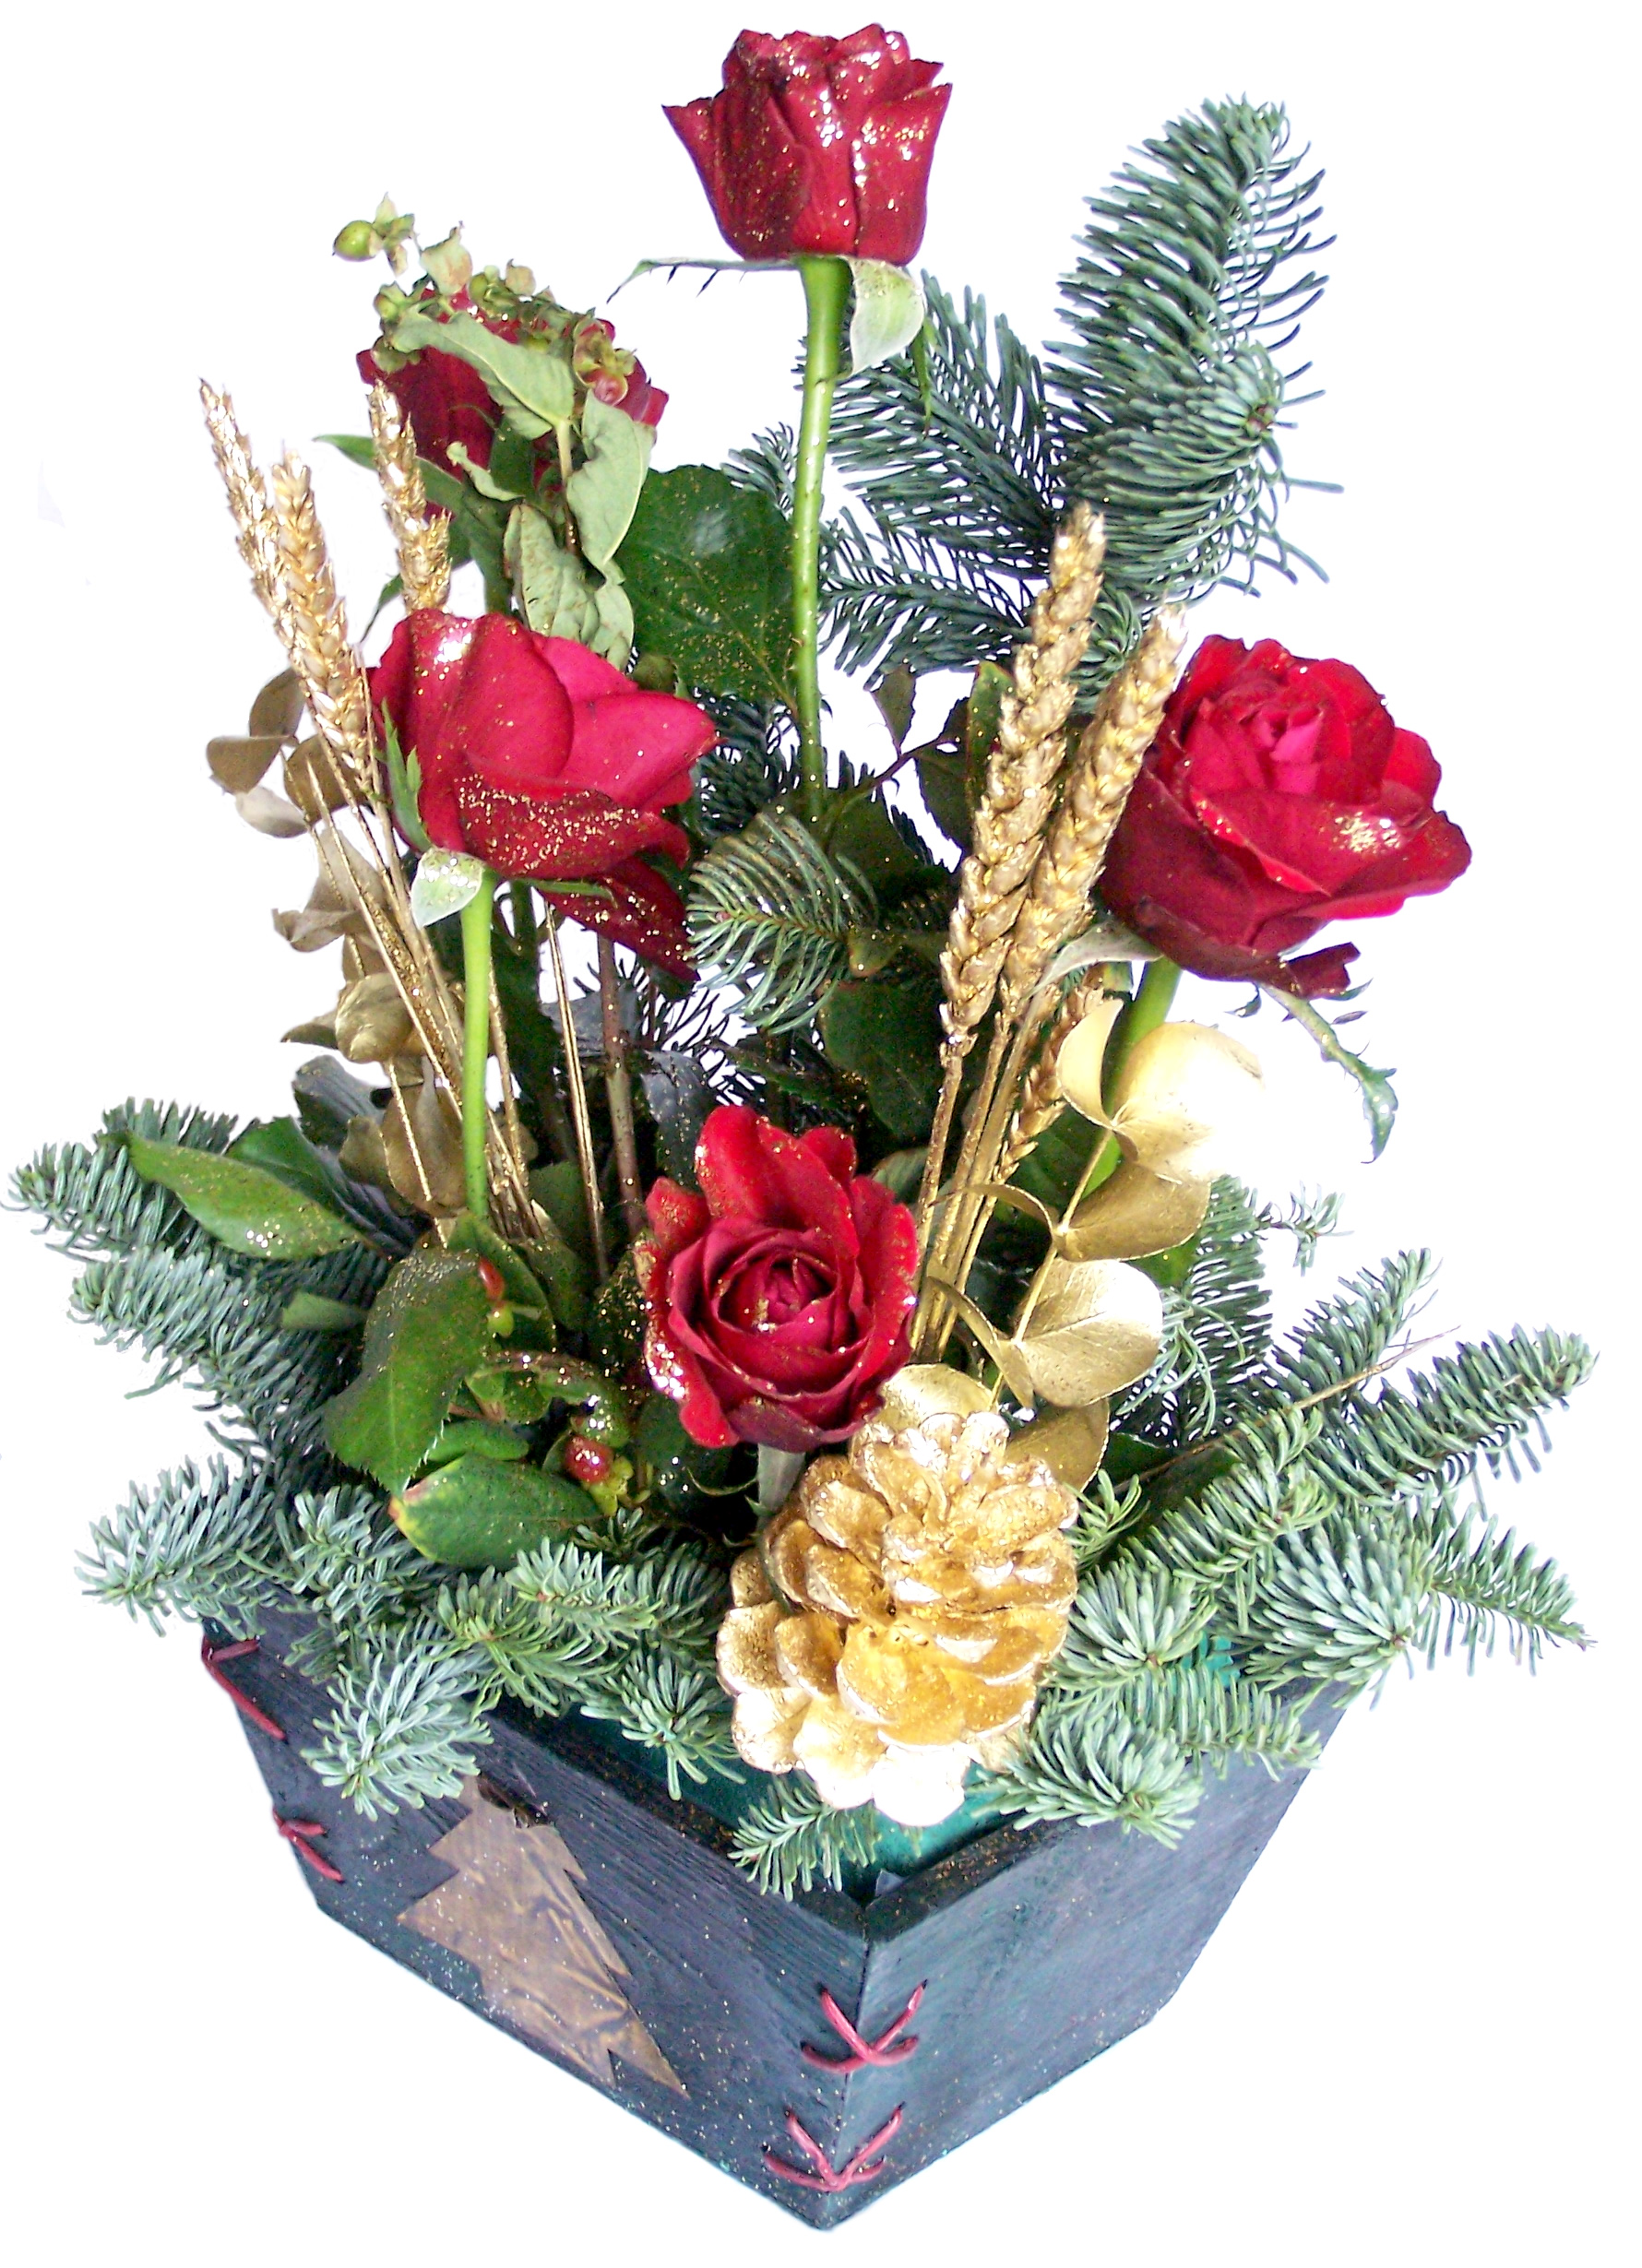 Benefits of online flower shopping for Christmas